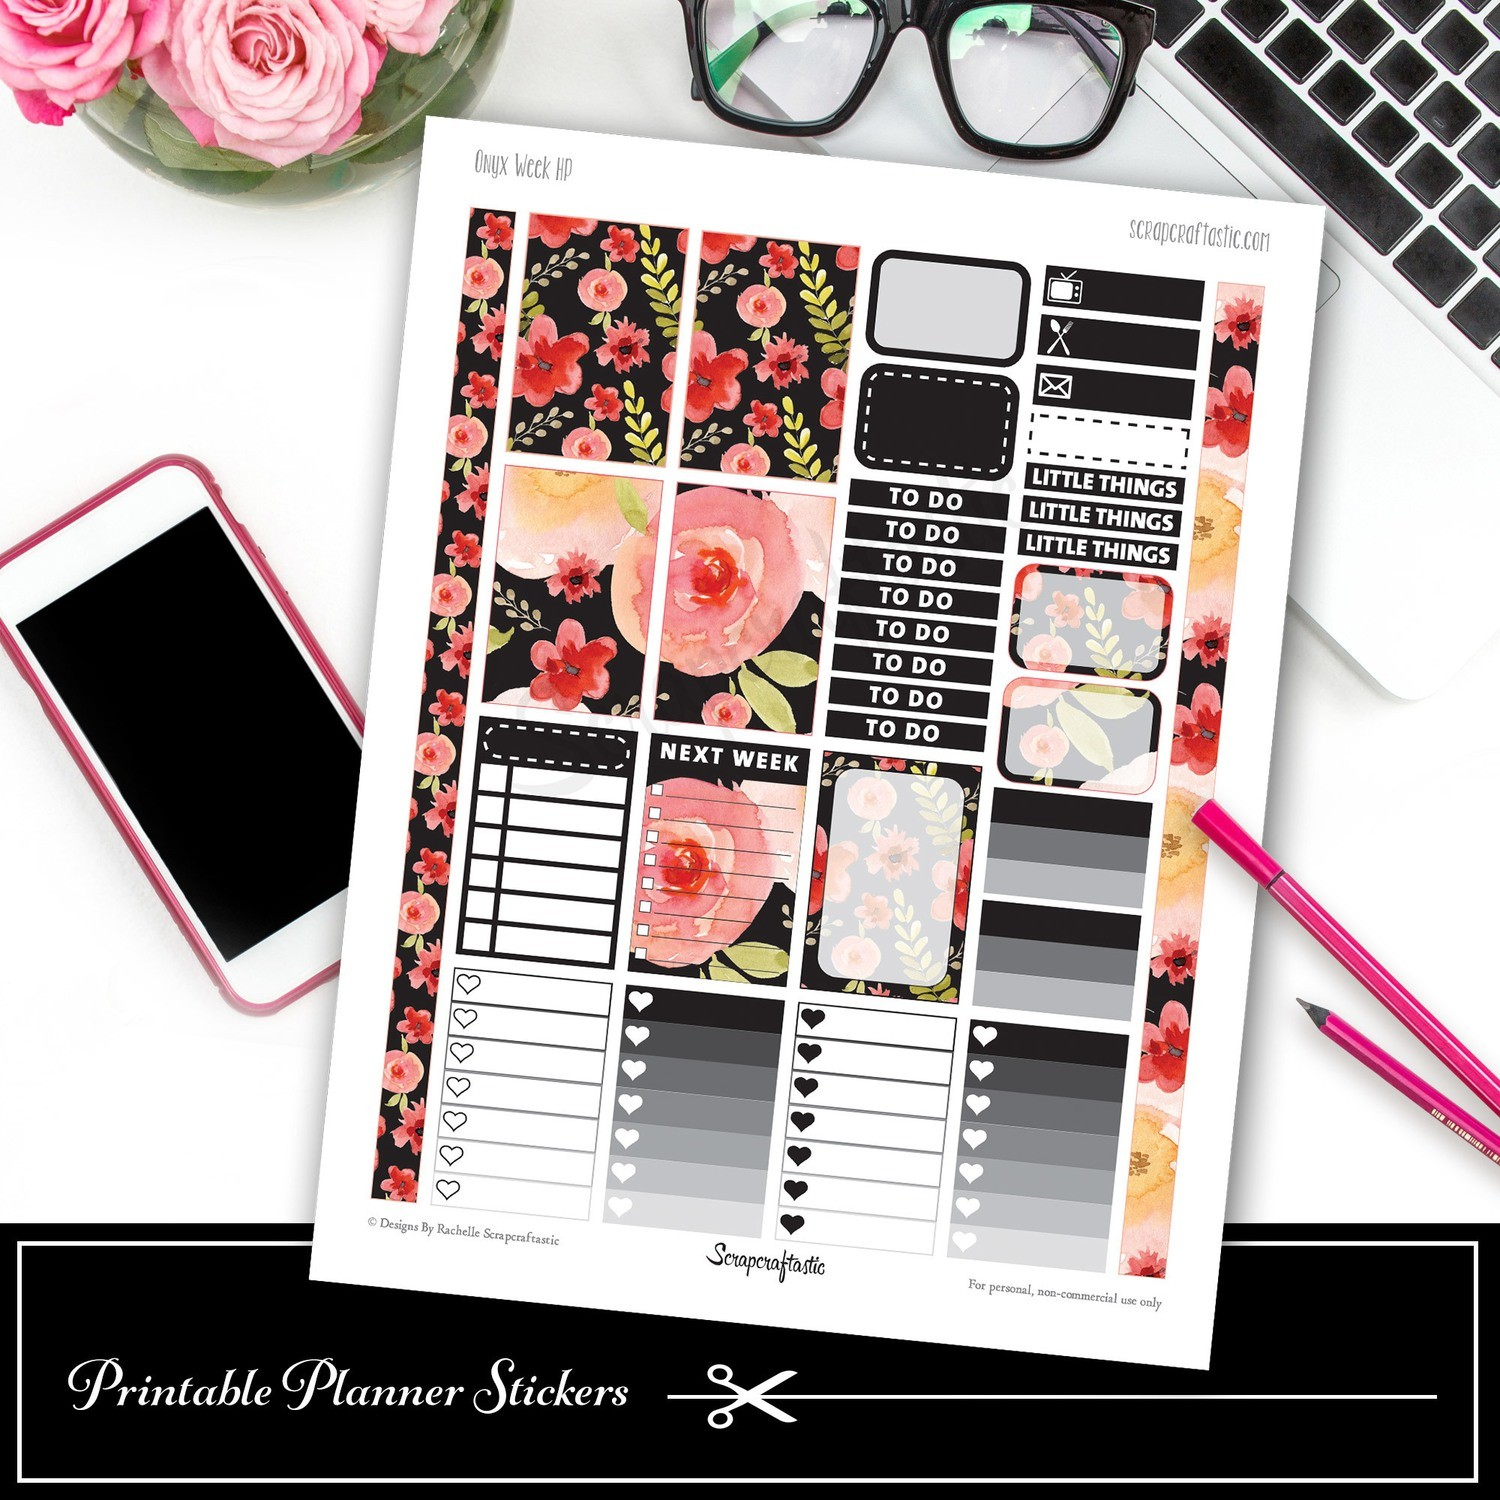 Onyx Week HP Printable Planner Stickers